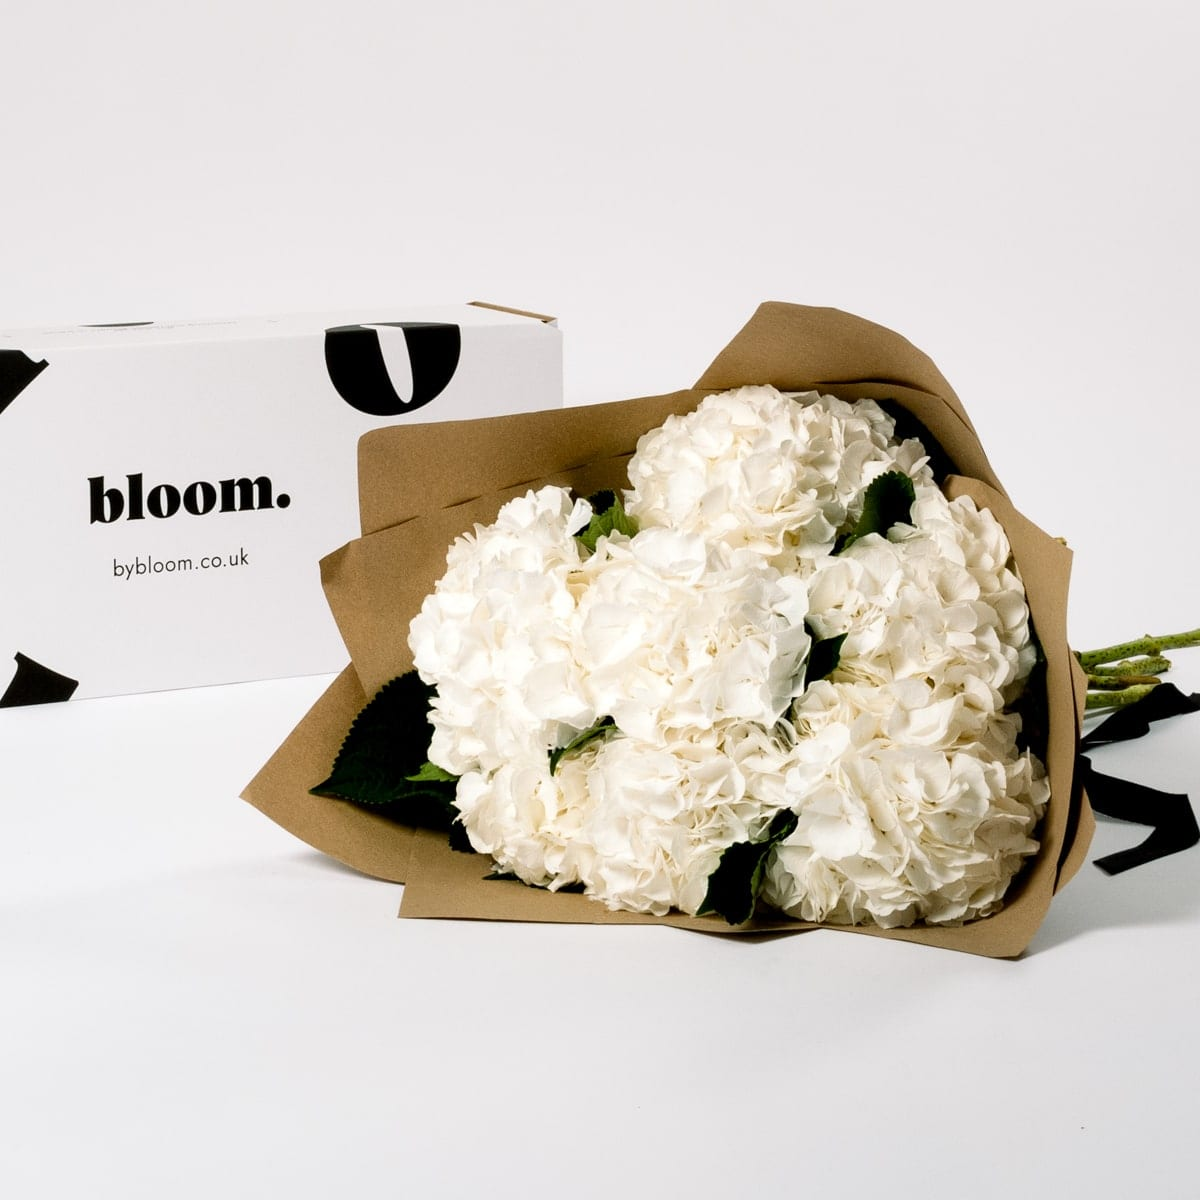 Bloom Flower Delivery | Cloud White Hydrangea